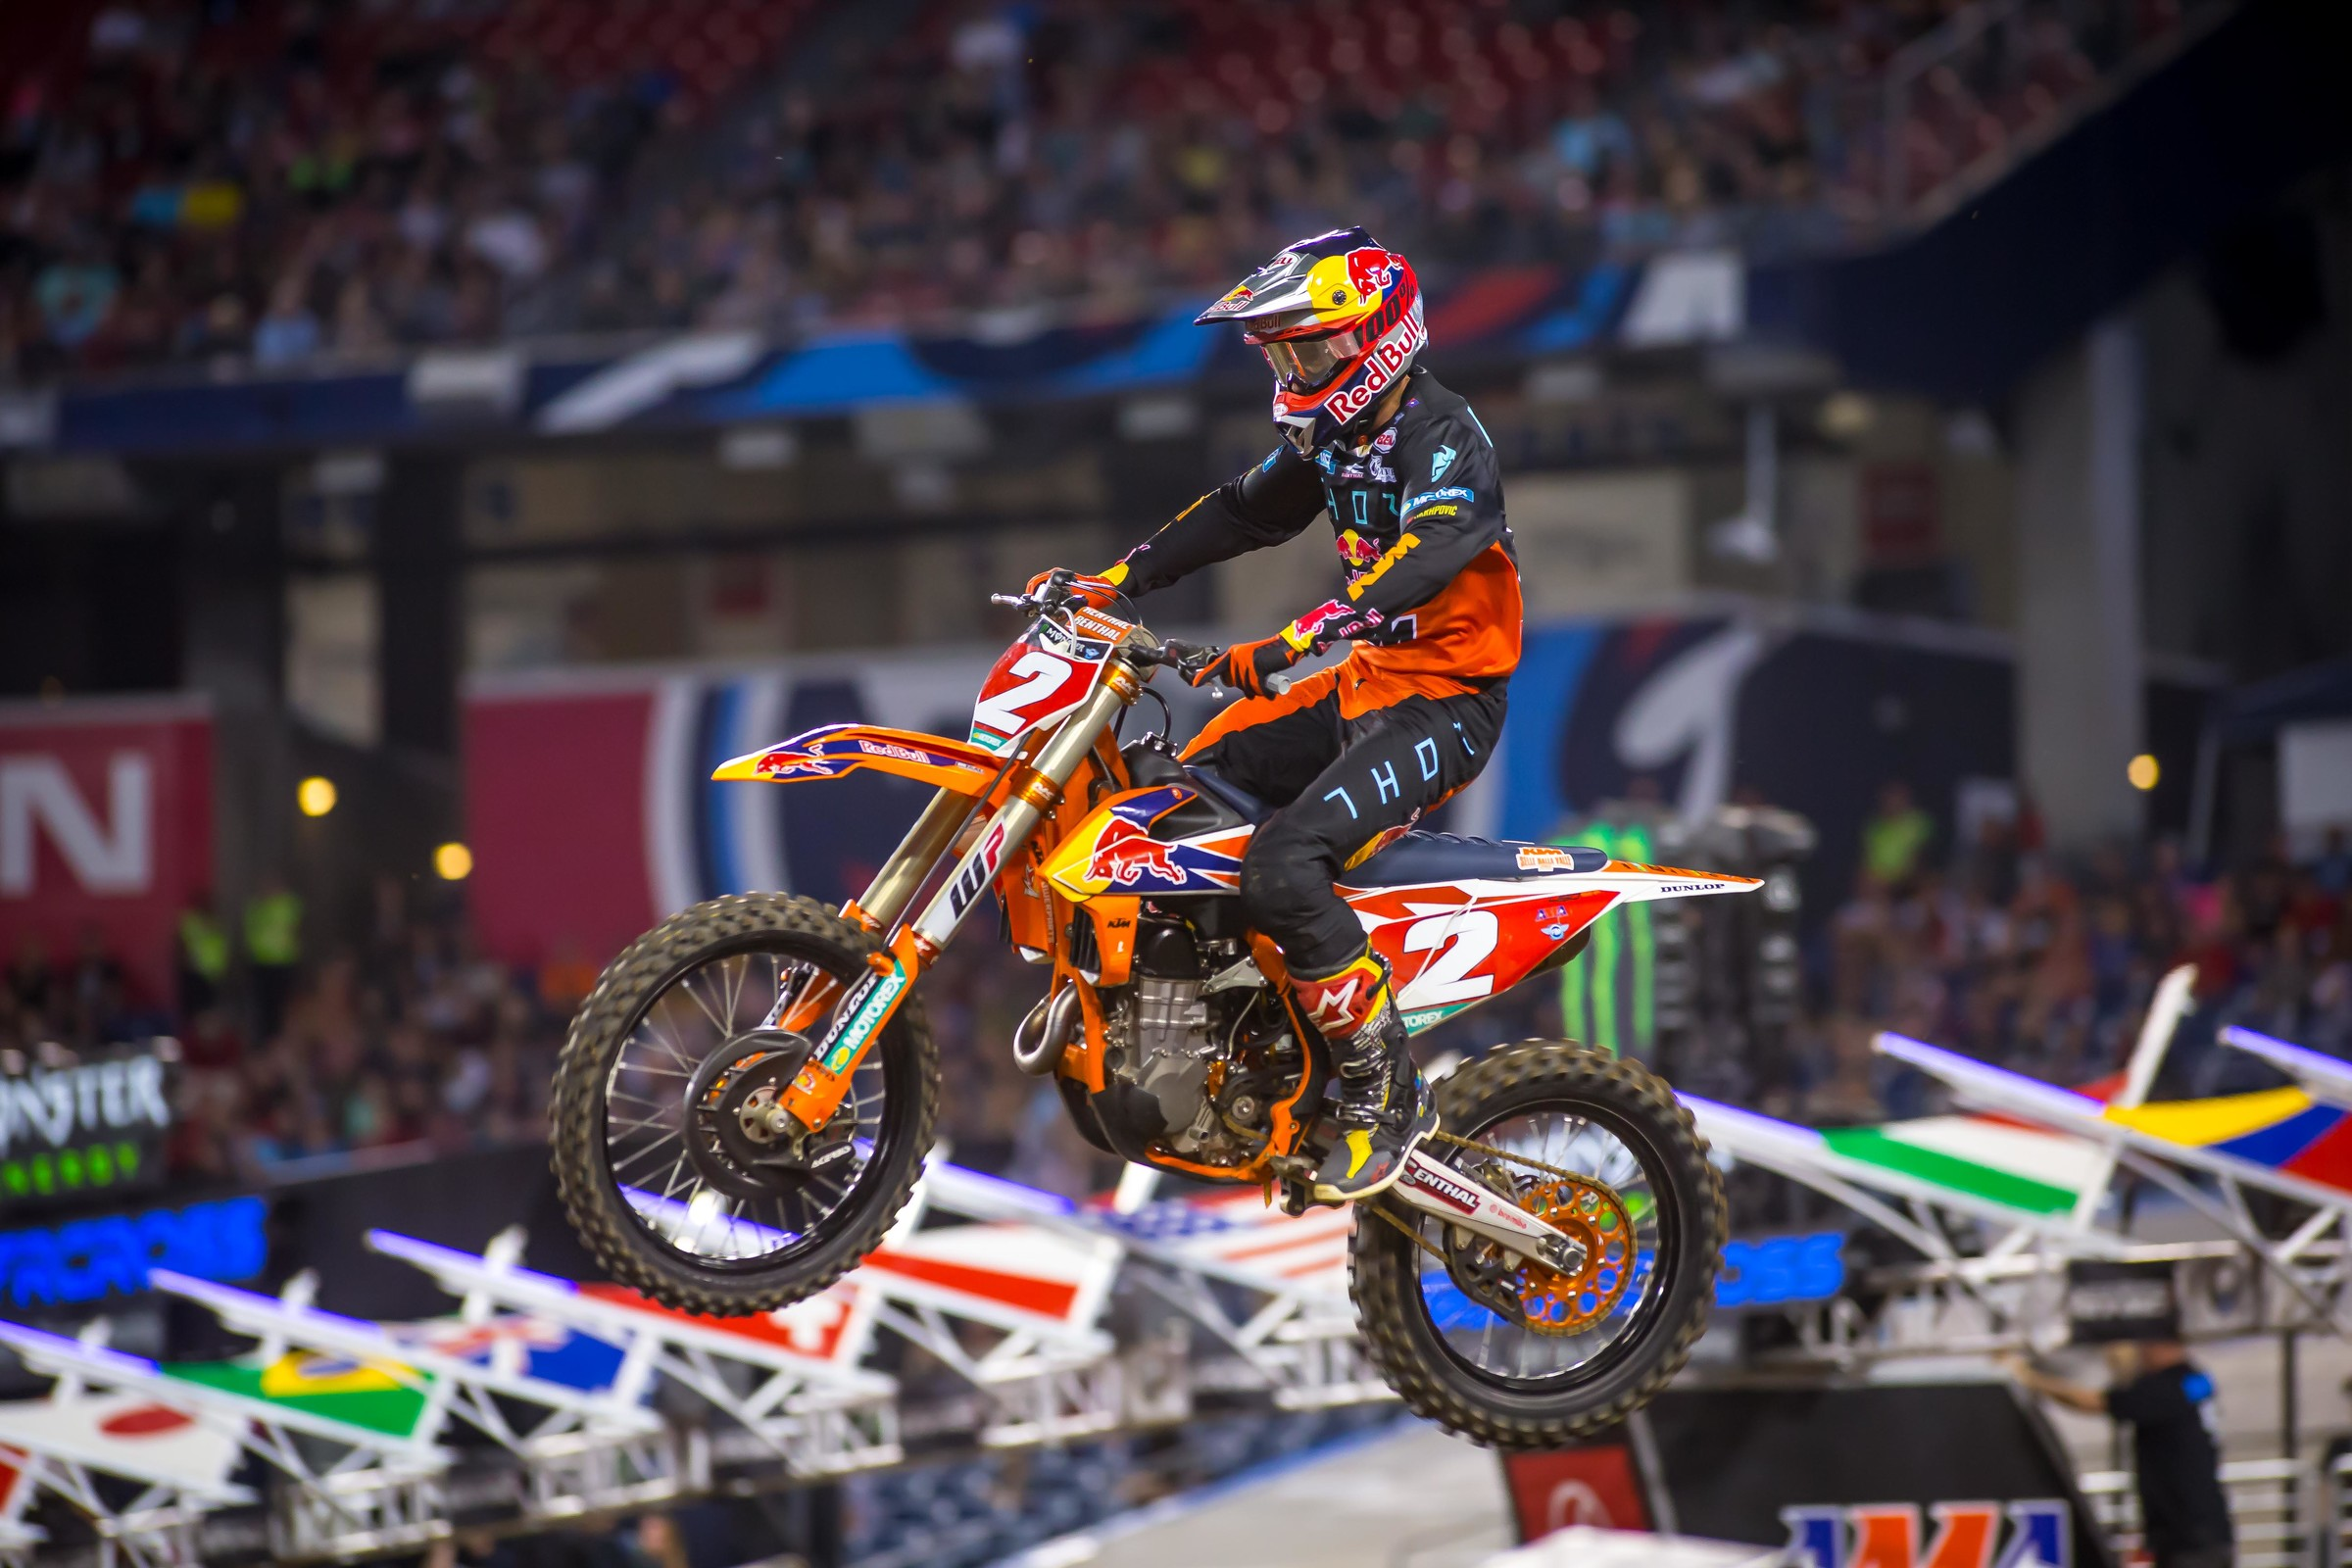 Webb once again used a great start and consistent riding to land on the podium and extend his points lead.